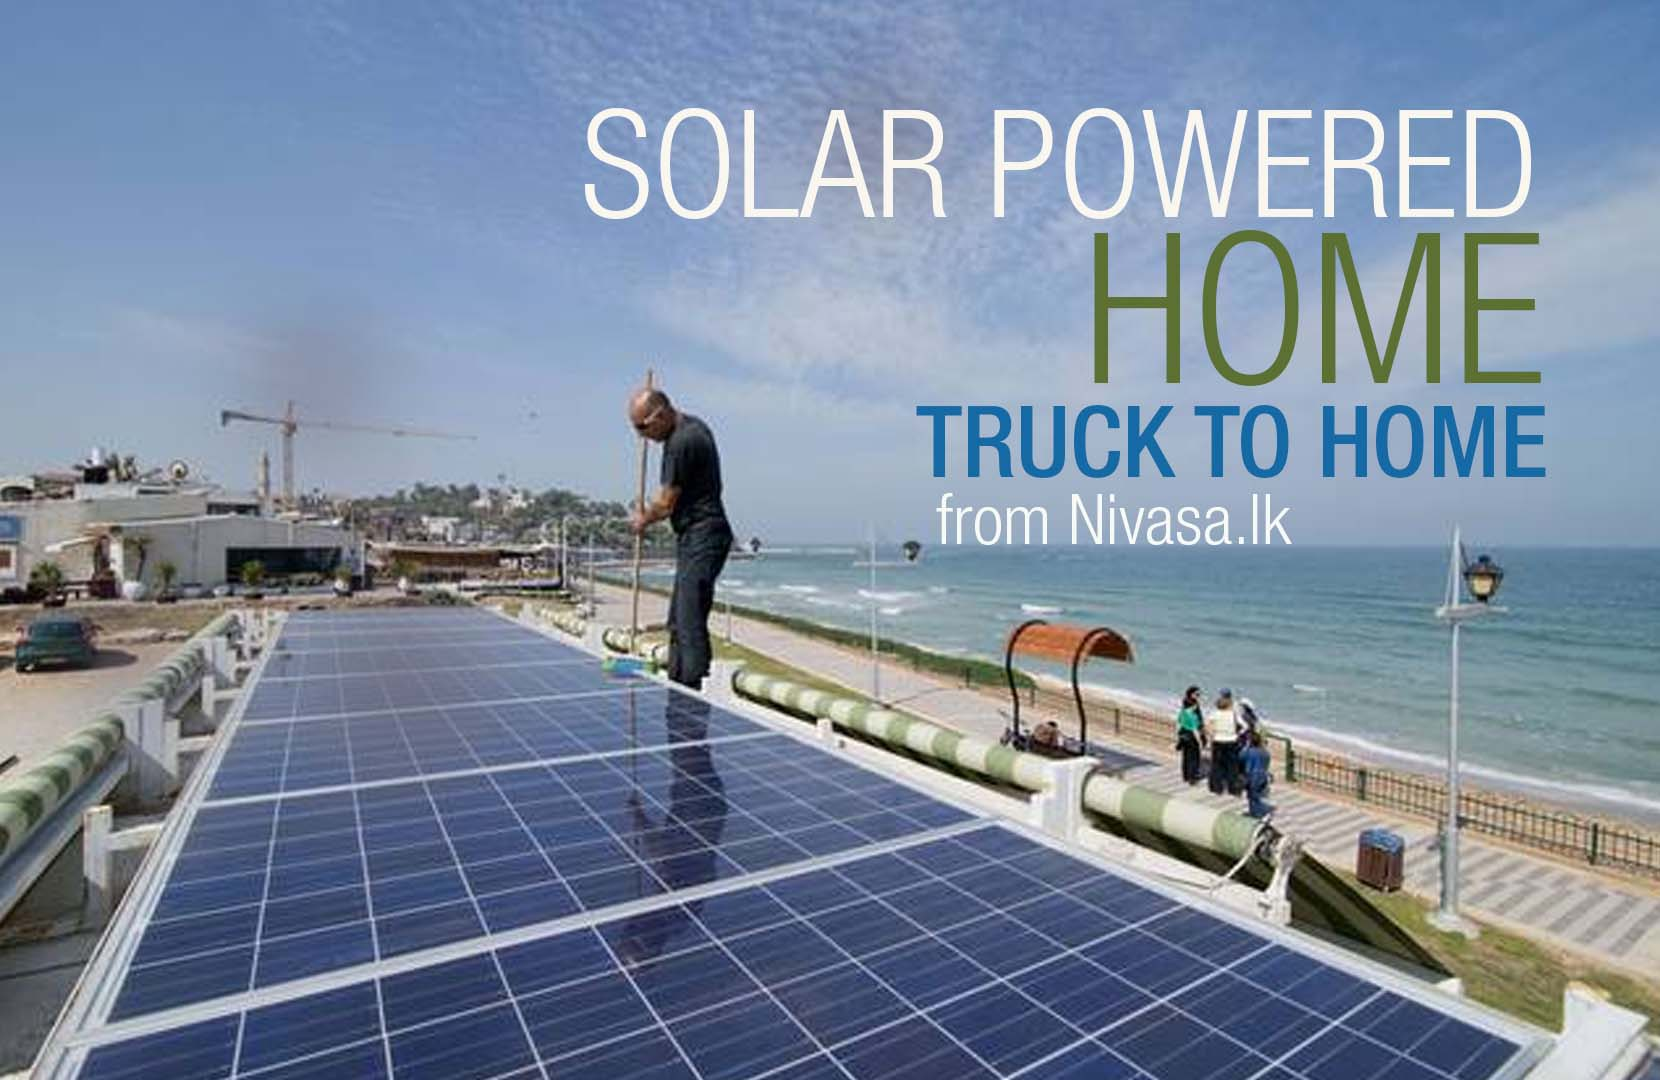 Man converts truck into solar-powered home. You need to see this